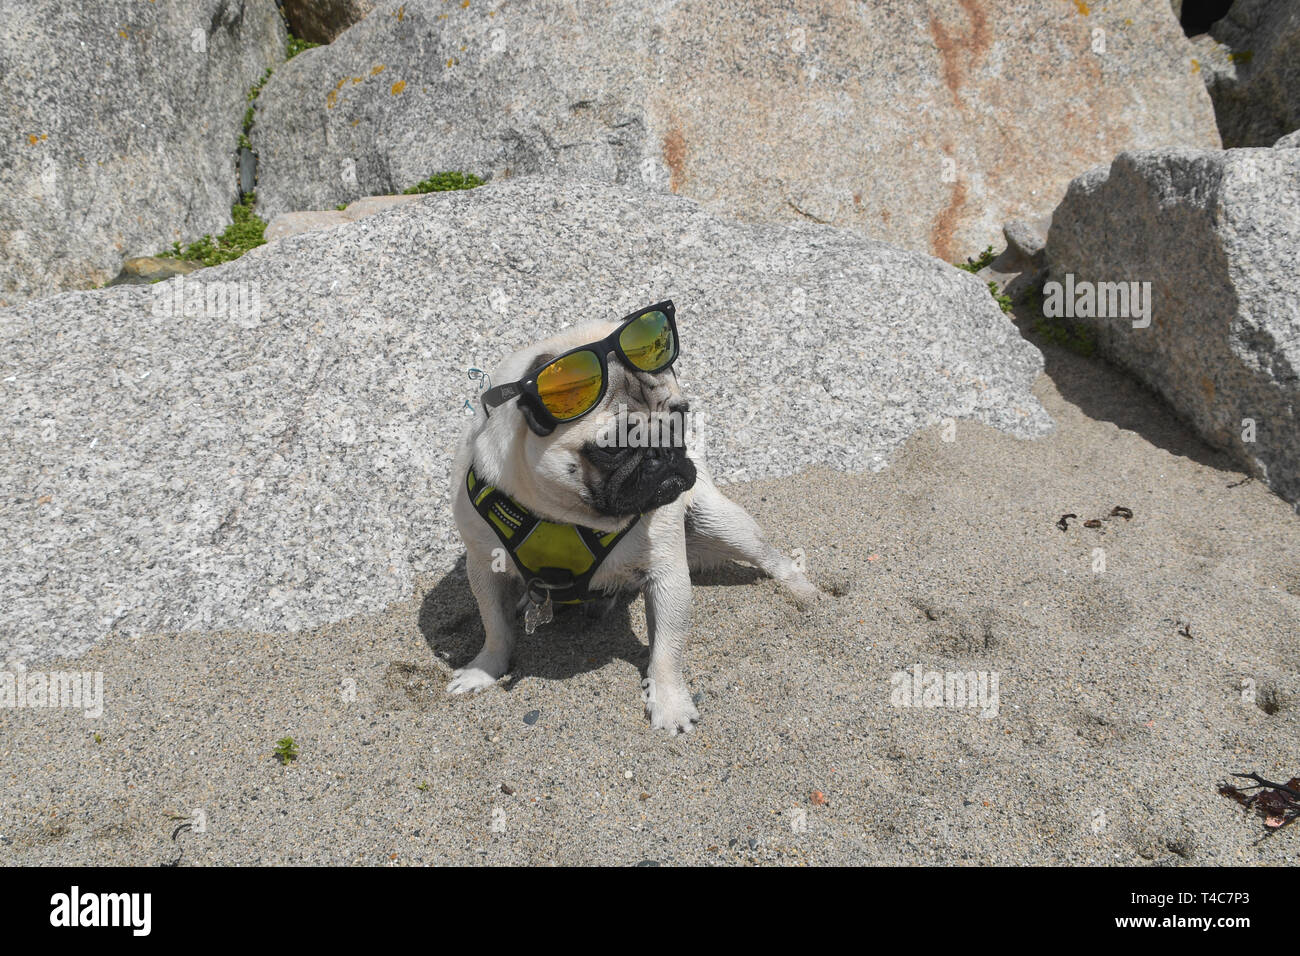 Longrock, Cornwall, UK. 16th Apr, 2019. UK Weather. Hot and sunny on the beach at Longrock, Cornwall for Titan the Pug's lunchtime walk. Credit: Simon Maycock/Alamy Live News Stock Photo